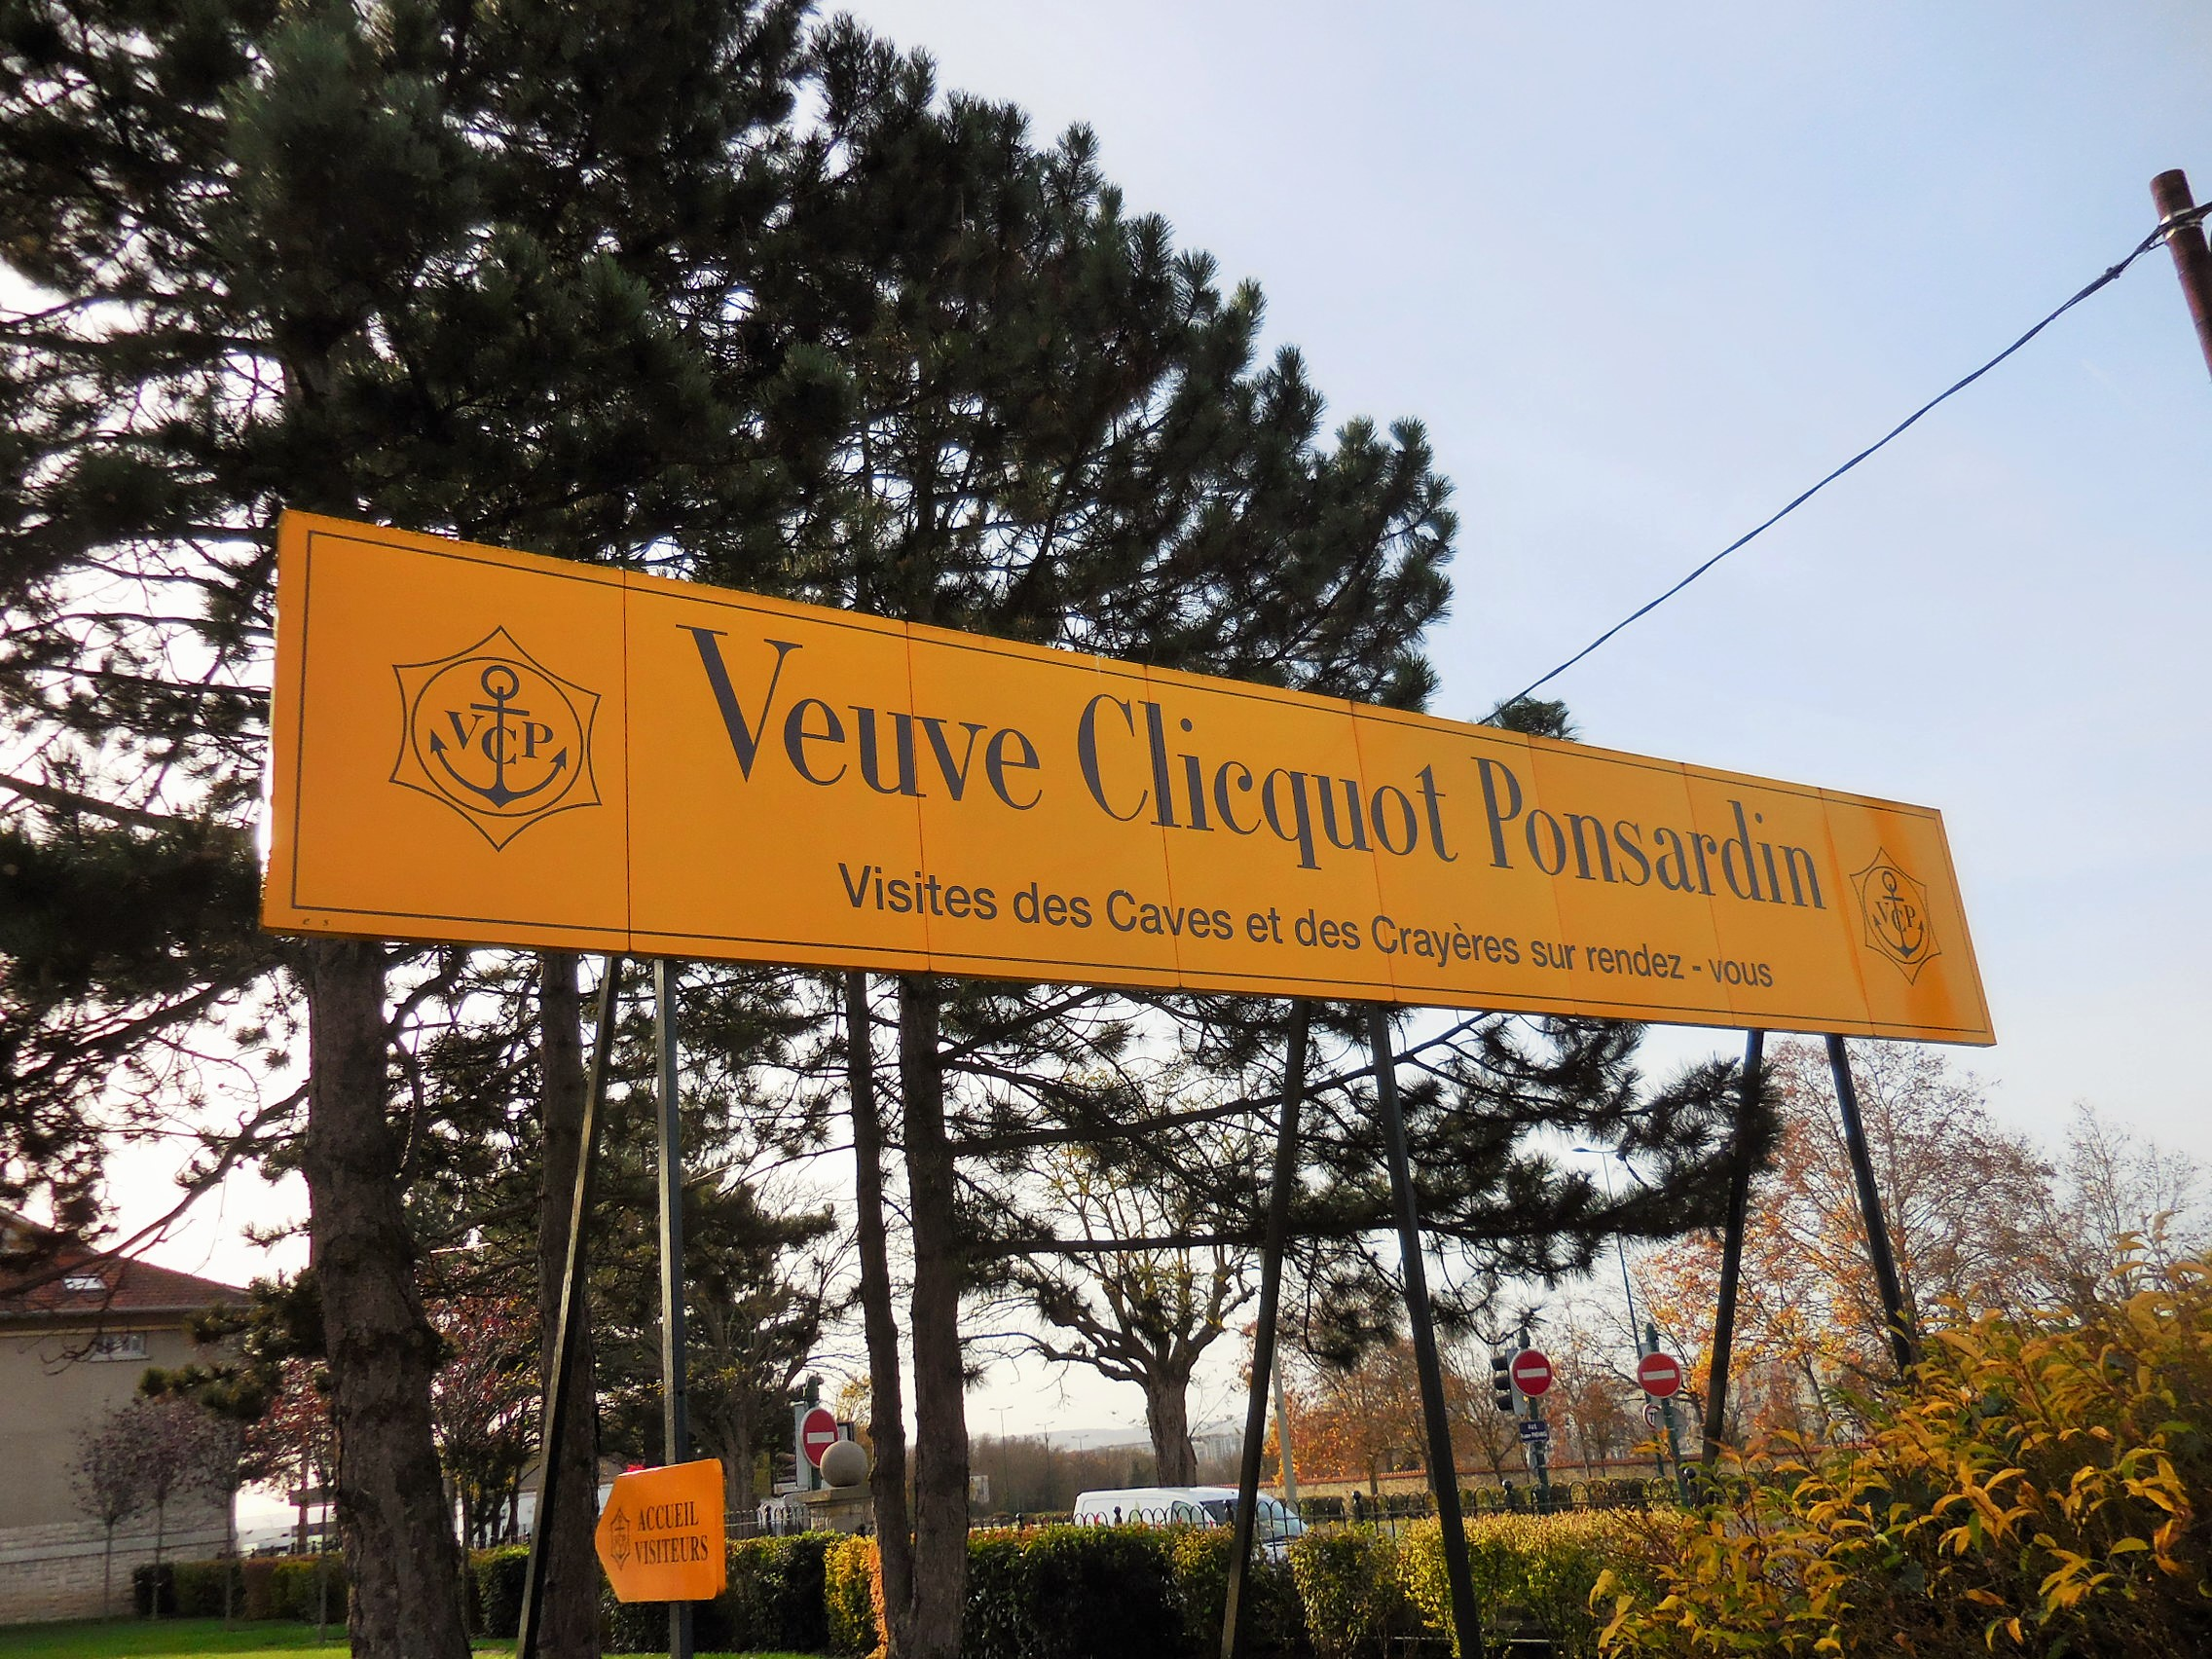 Bottle of champagne, tasting, small local producer, visit of a cellar, famous houses and domains, Veuve Clicquot, producteur local de champagne